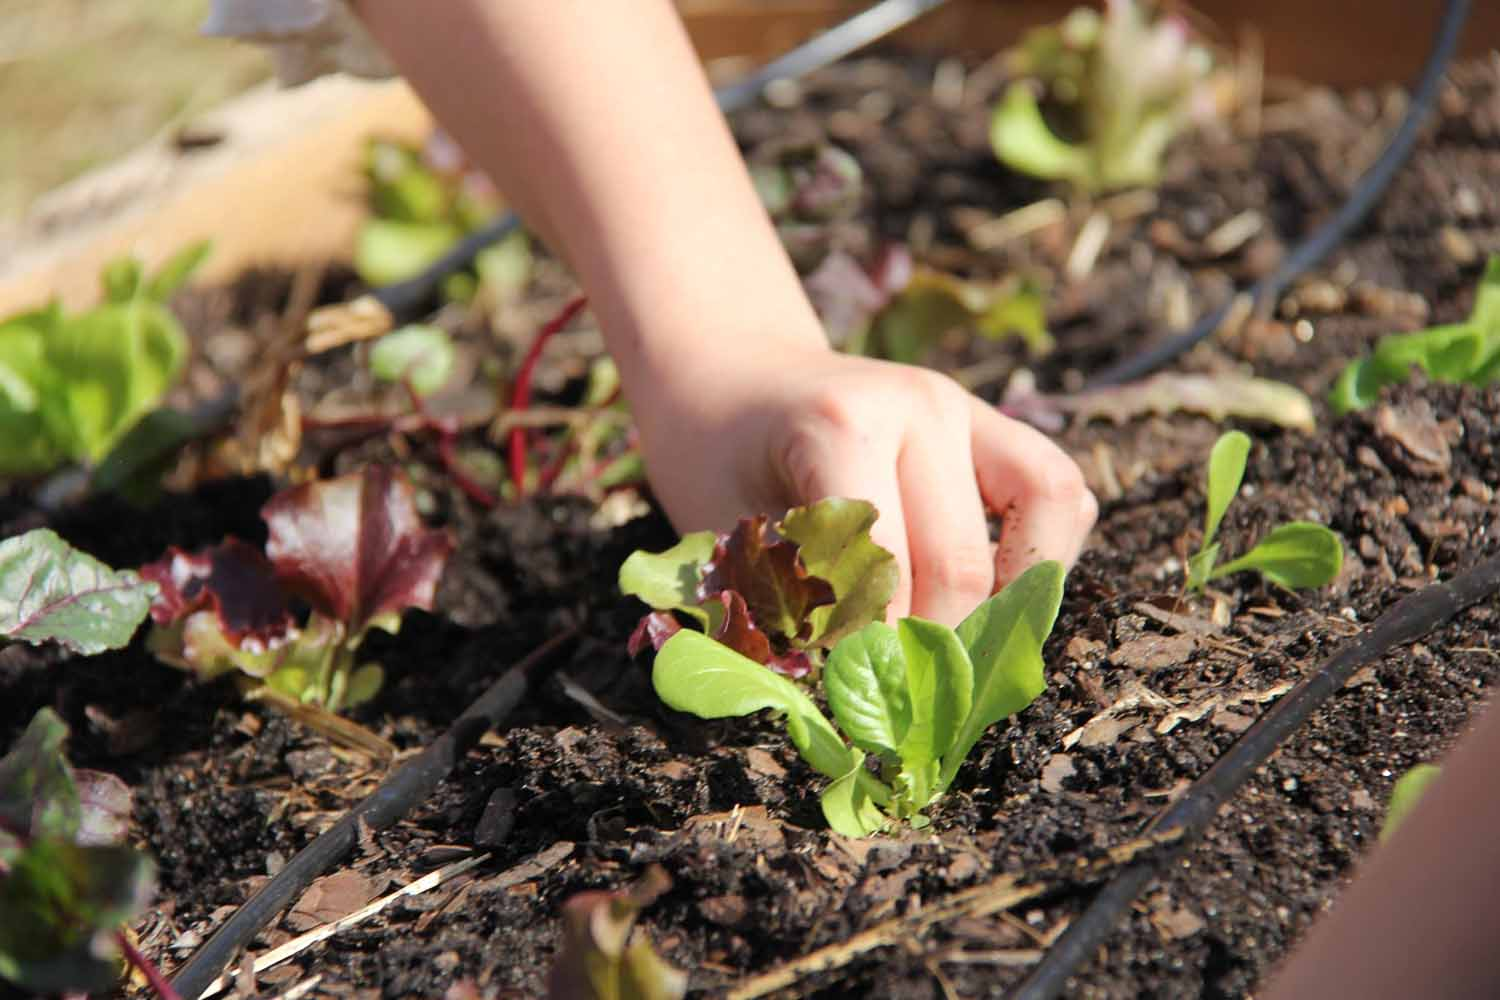 UGA Extension offices are often a critical resource for many Farm to School programs and gardens, offering curricula, publications and sometimes even hands-on labor.